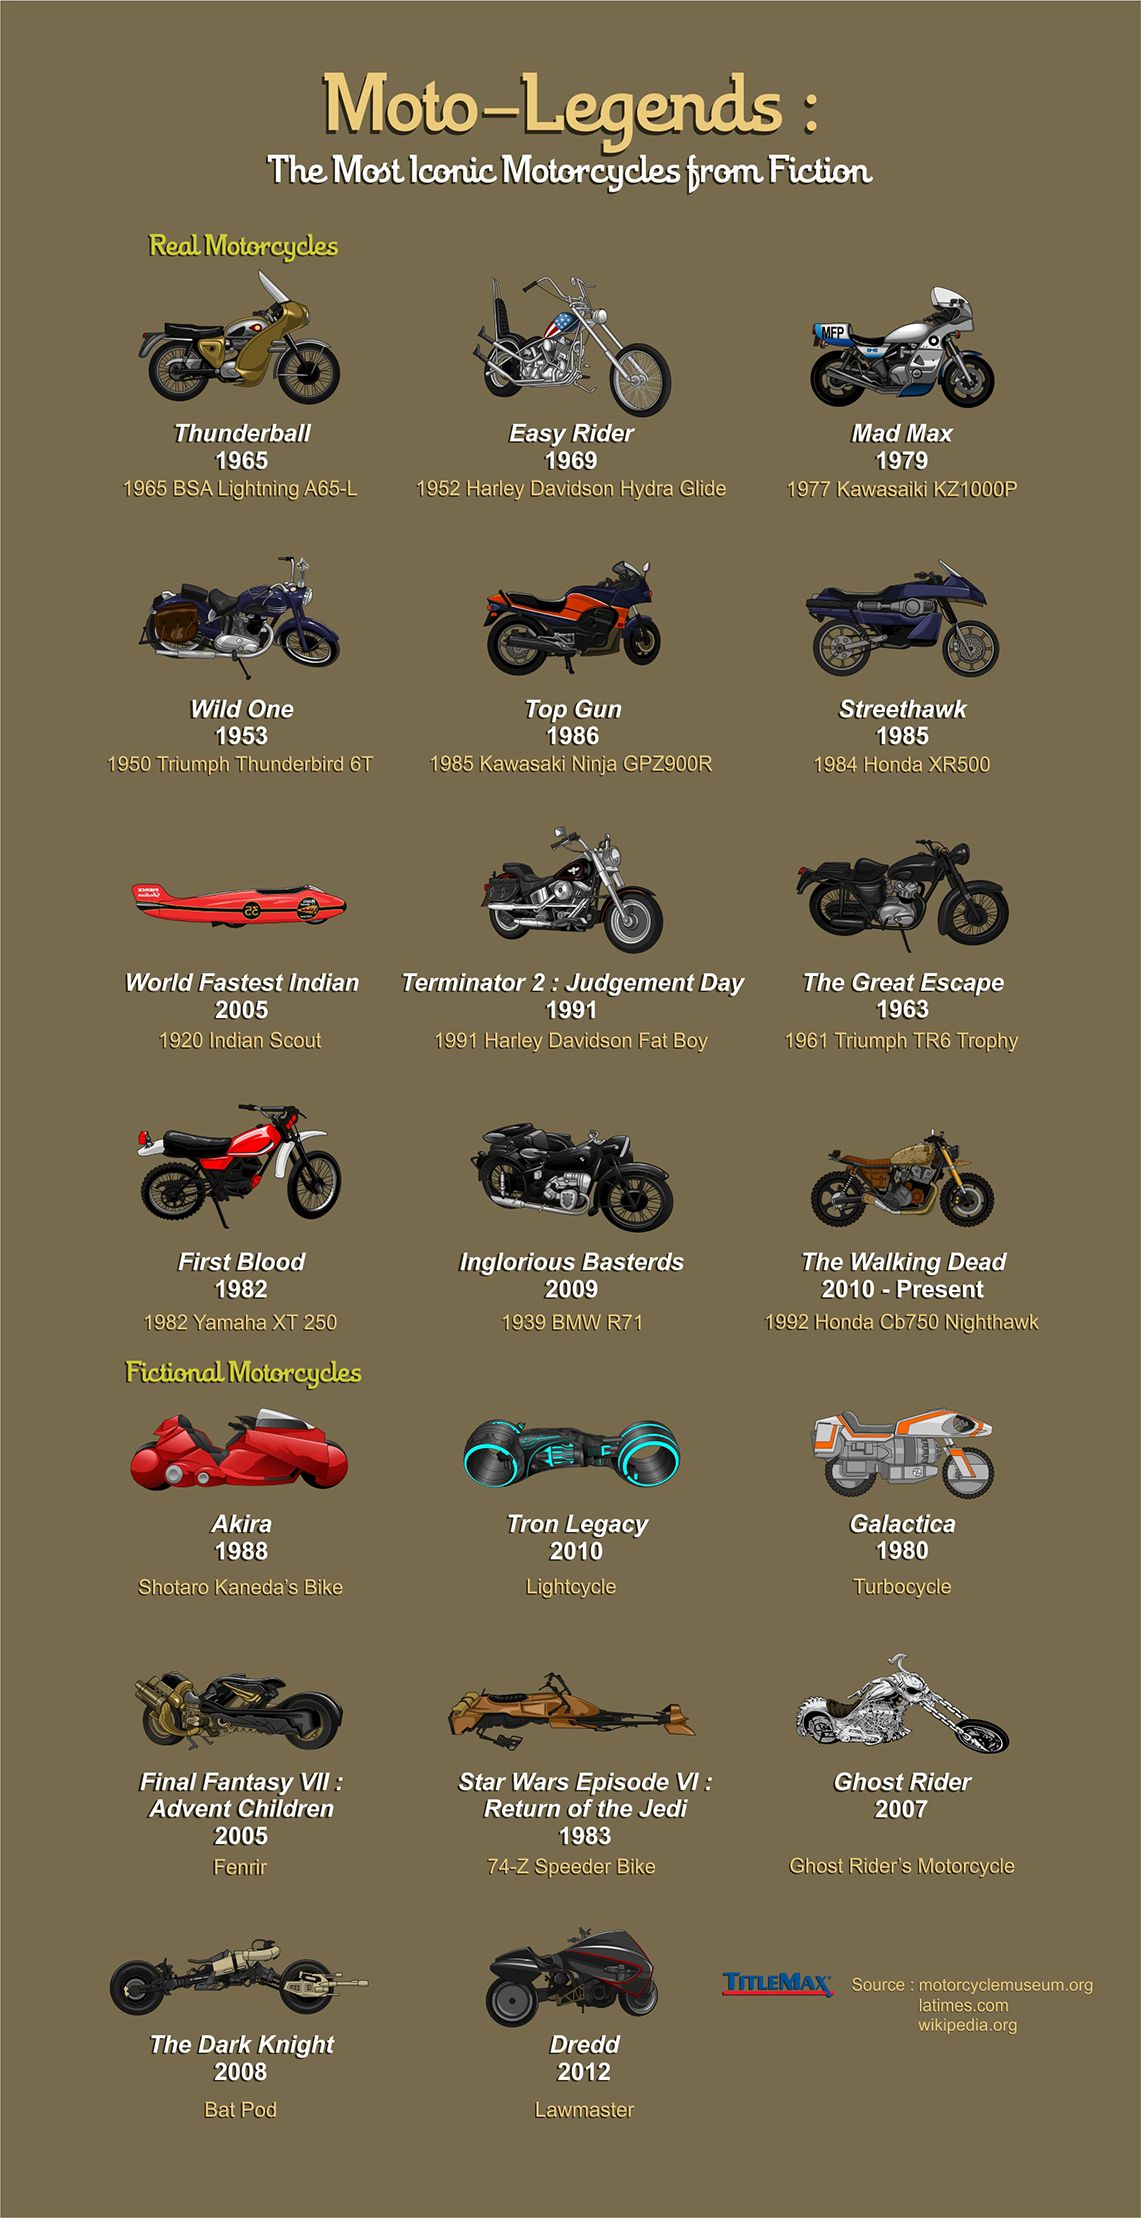 Moto Legends Most Iconic Motorcycles Interesting Things Penta Marine Engine Parts Further Ducati Diagram Besides 50cc Began To Achieve Mainstream Popularity In The United States Years Following World War Ii